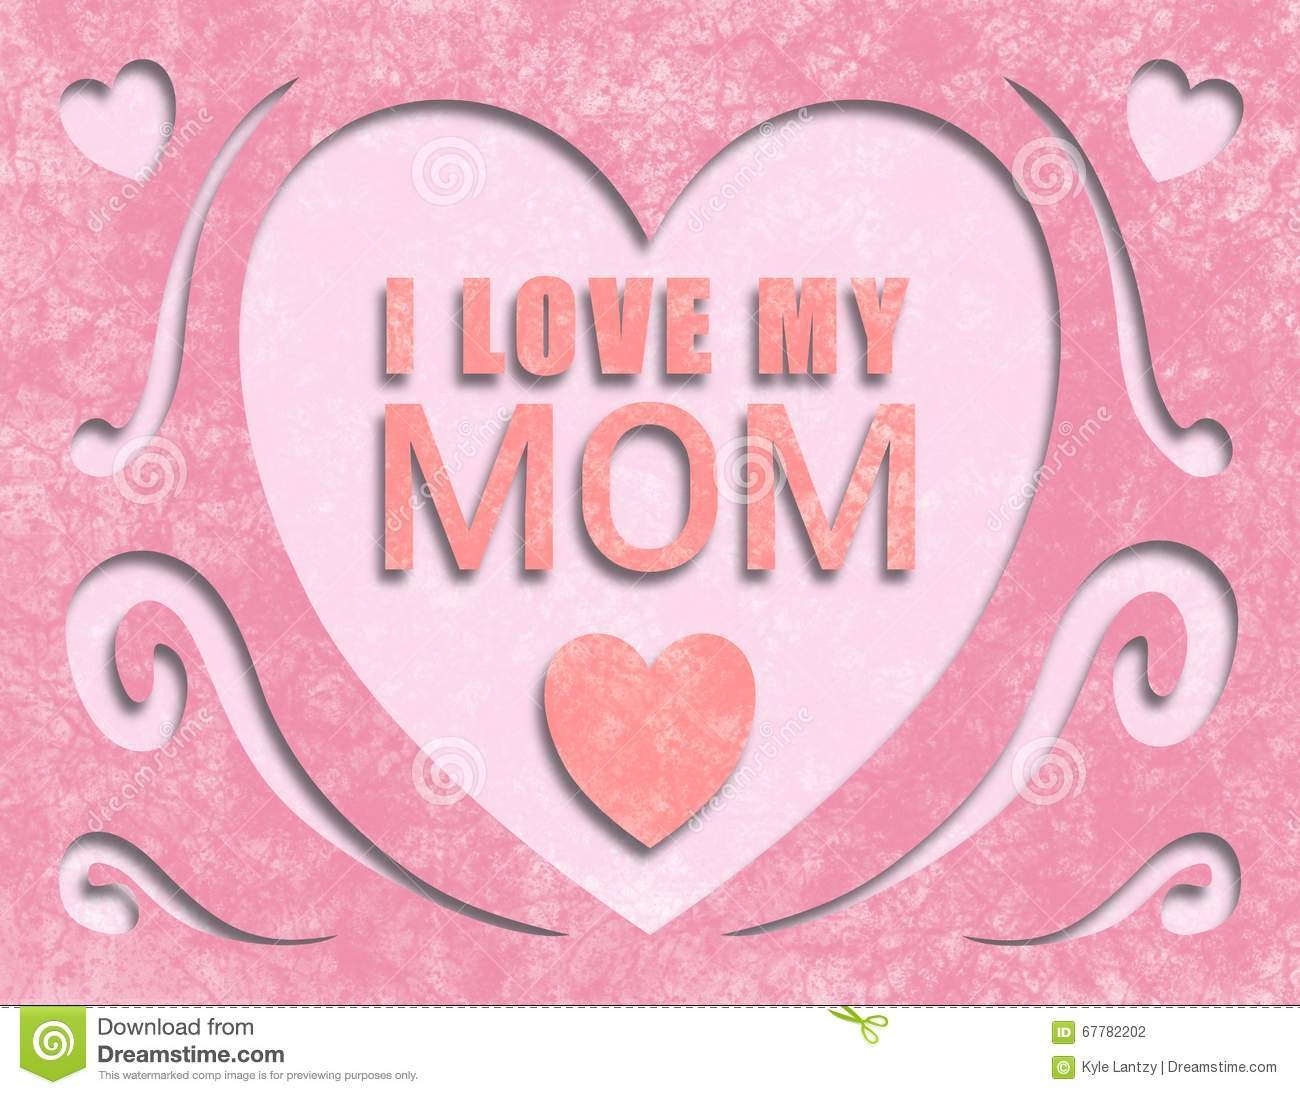 Pictures that say mom